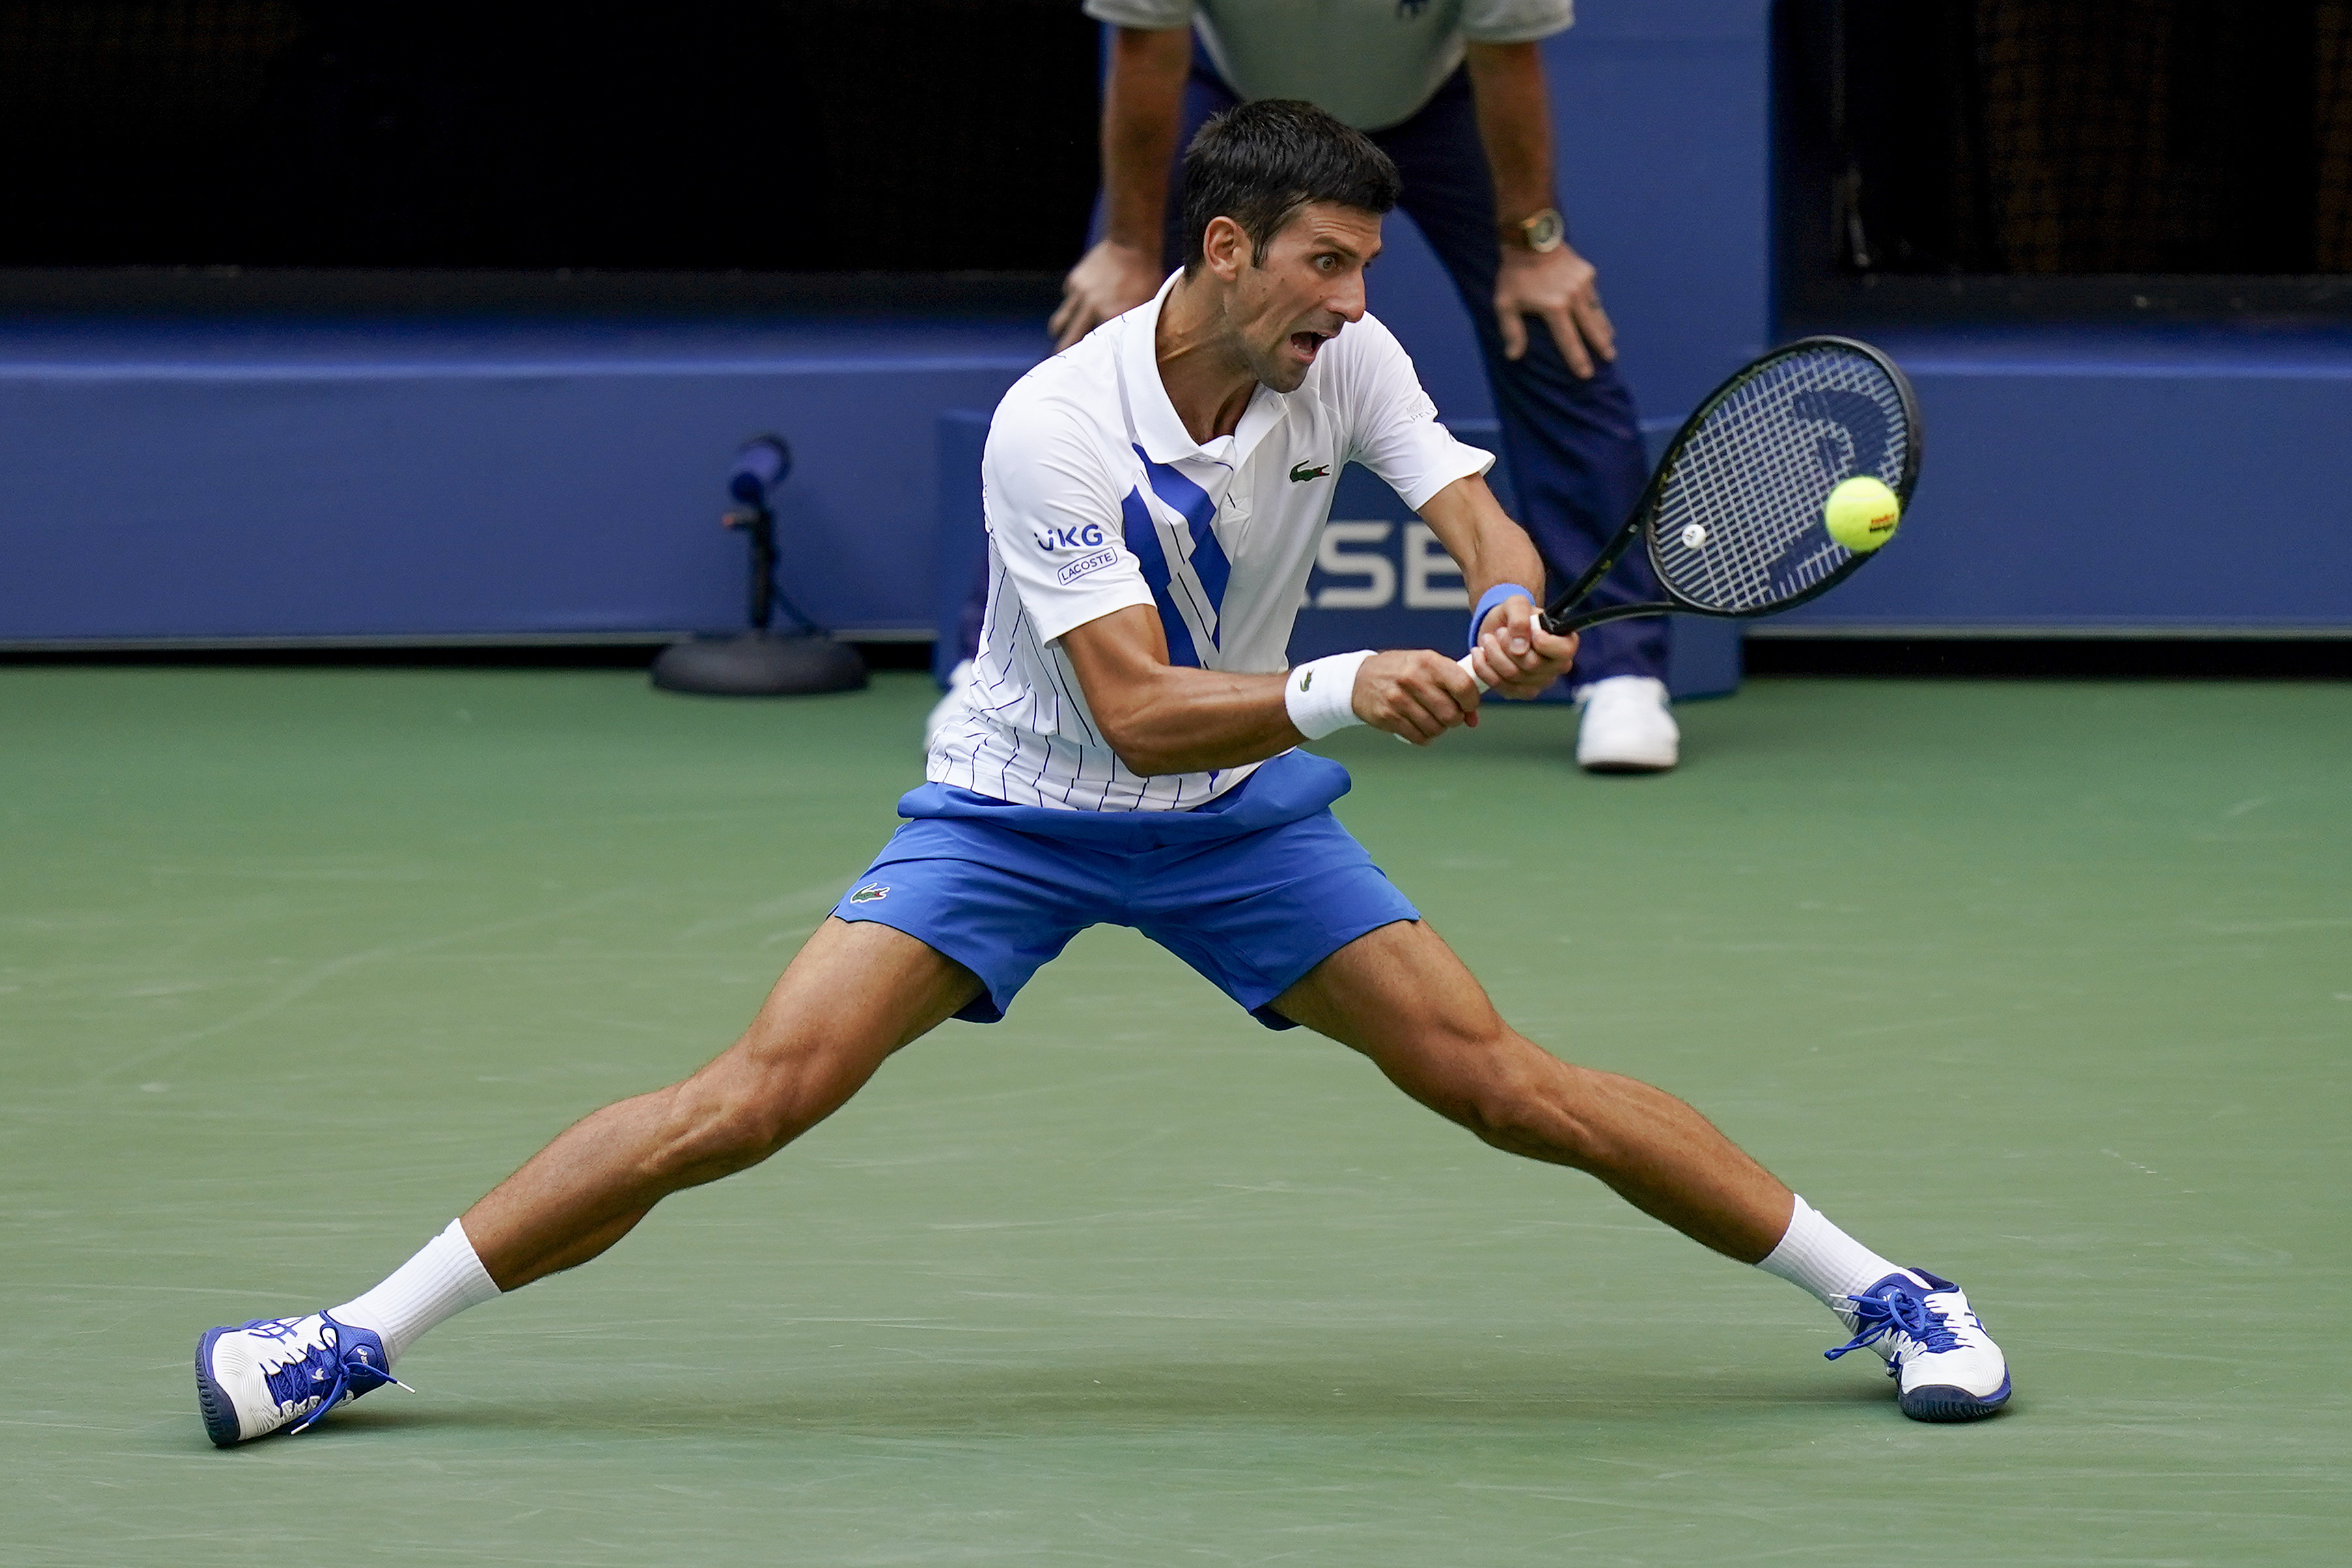 Djokovic Out Of Us Open After Hitting Line Judge With Ball Wkrg News 5